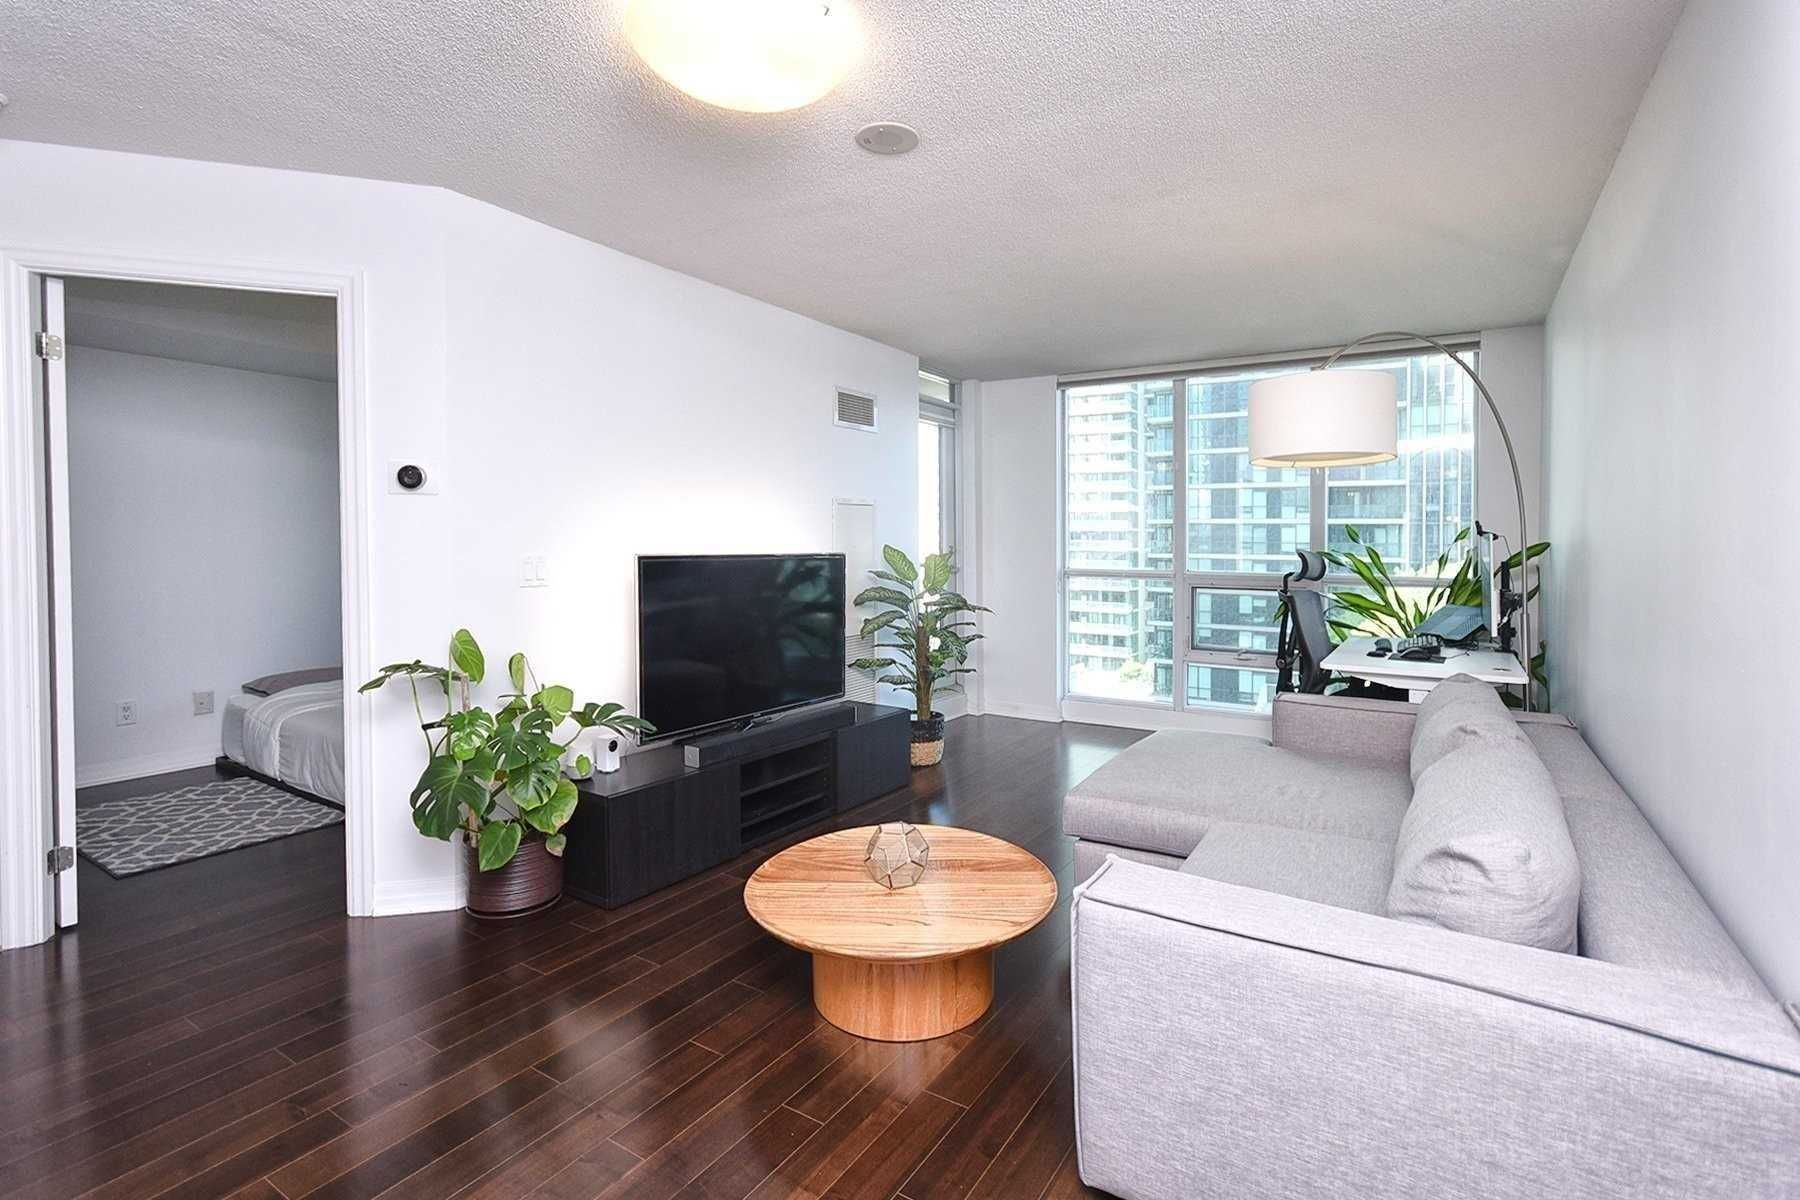 16 Yonge St, unit 812 for sale in Toronto - image #2